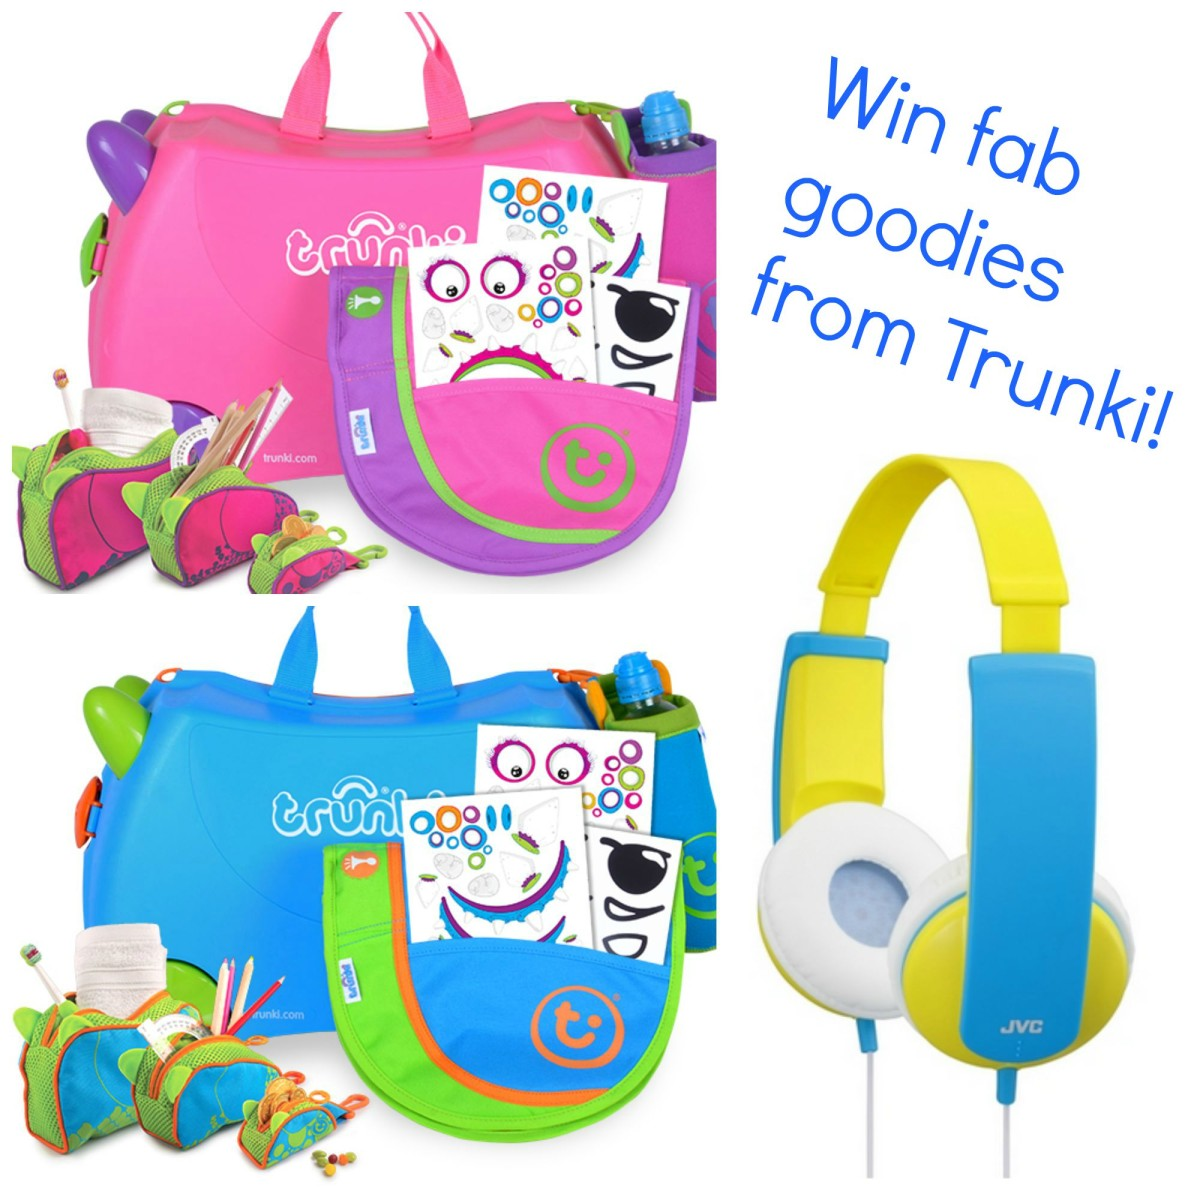 Trunki competition